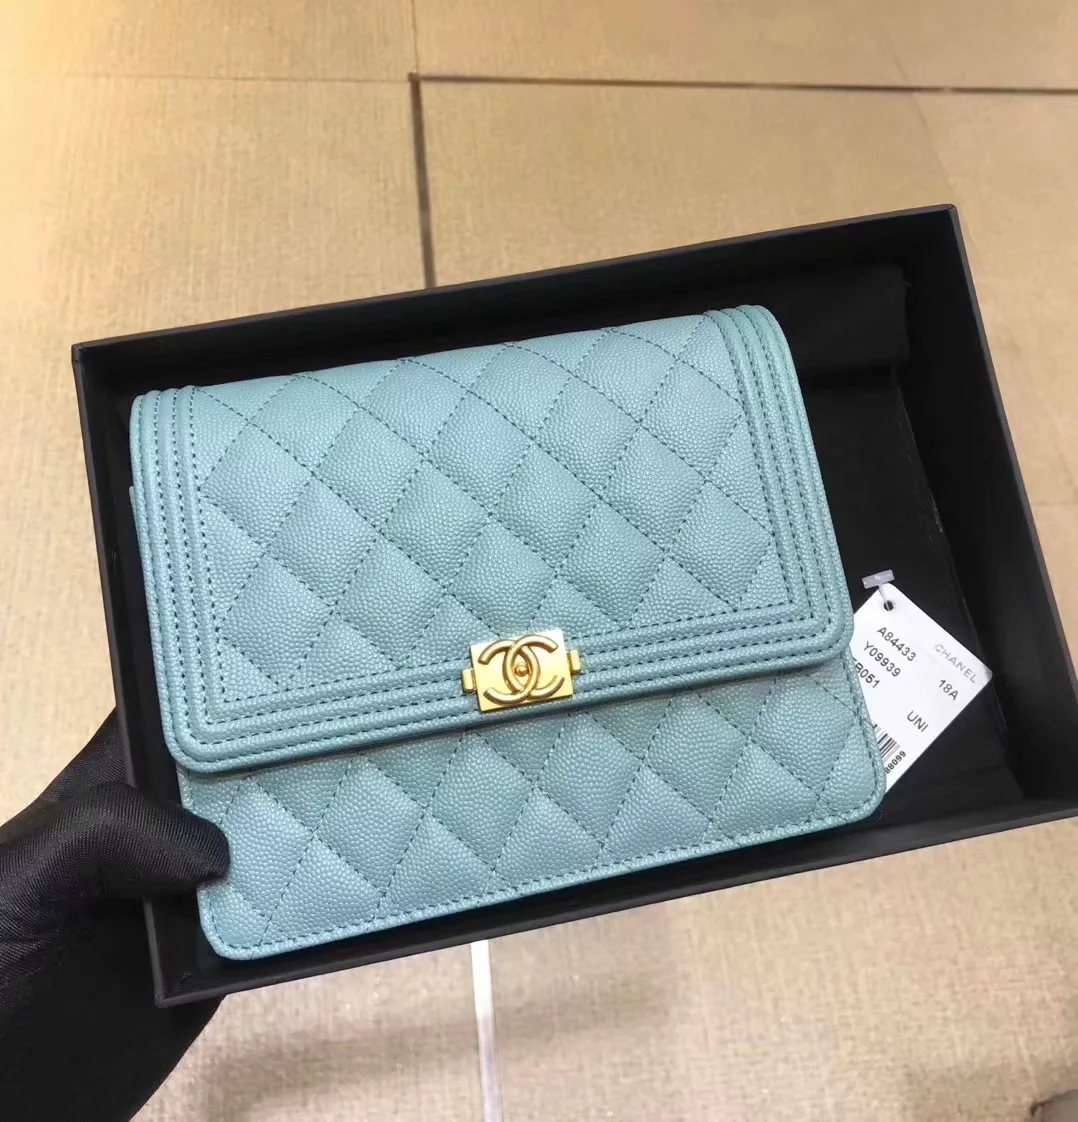 Replica Chanel A84433 BOY CHANEL Clutch with Chain Grained Calfskin Light Blue